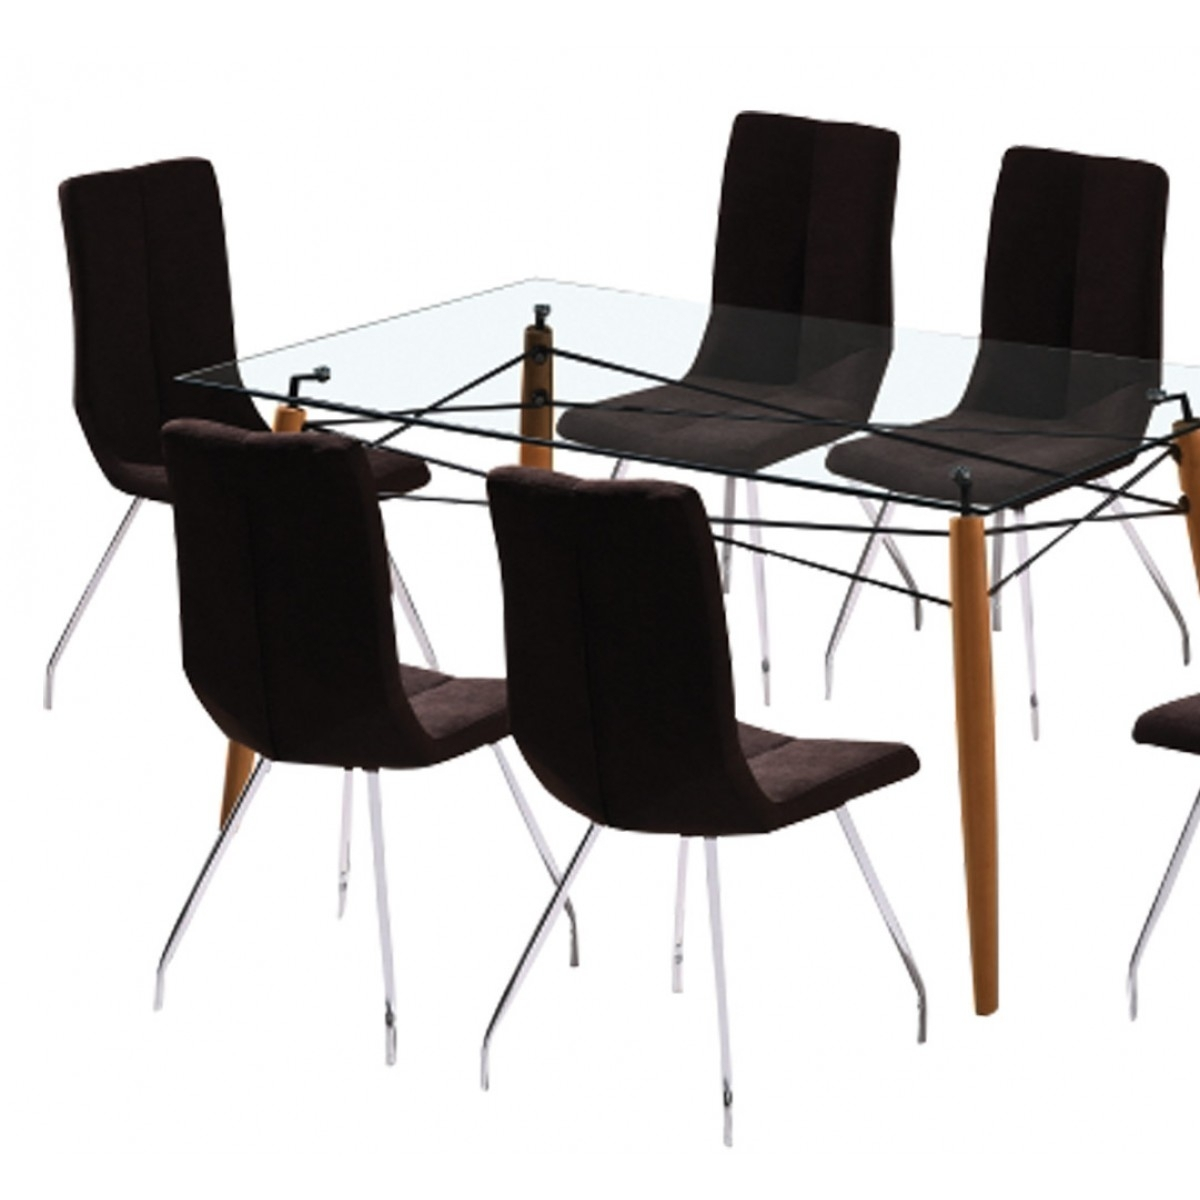 Logan 7 Piece Dining Set | Damro Within Current Logan 7 Piece Dining Sets (Image 8 of 20)